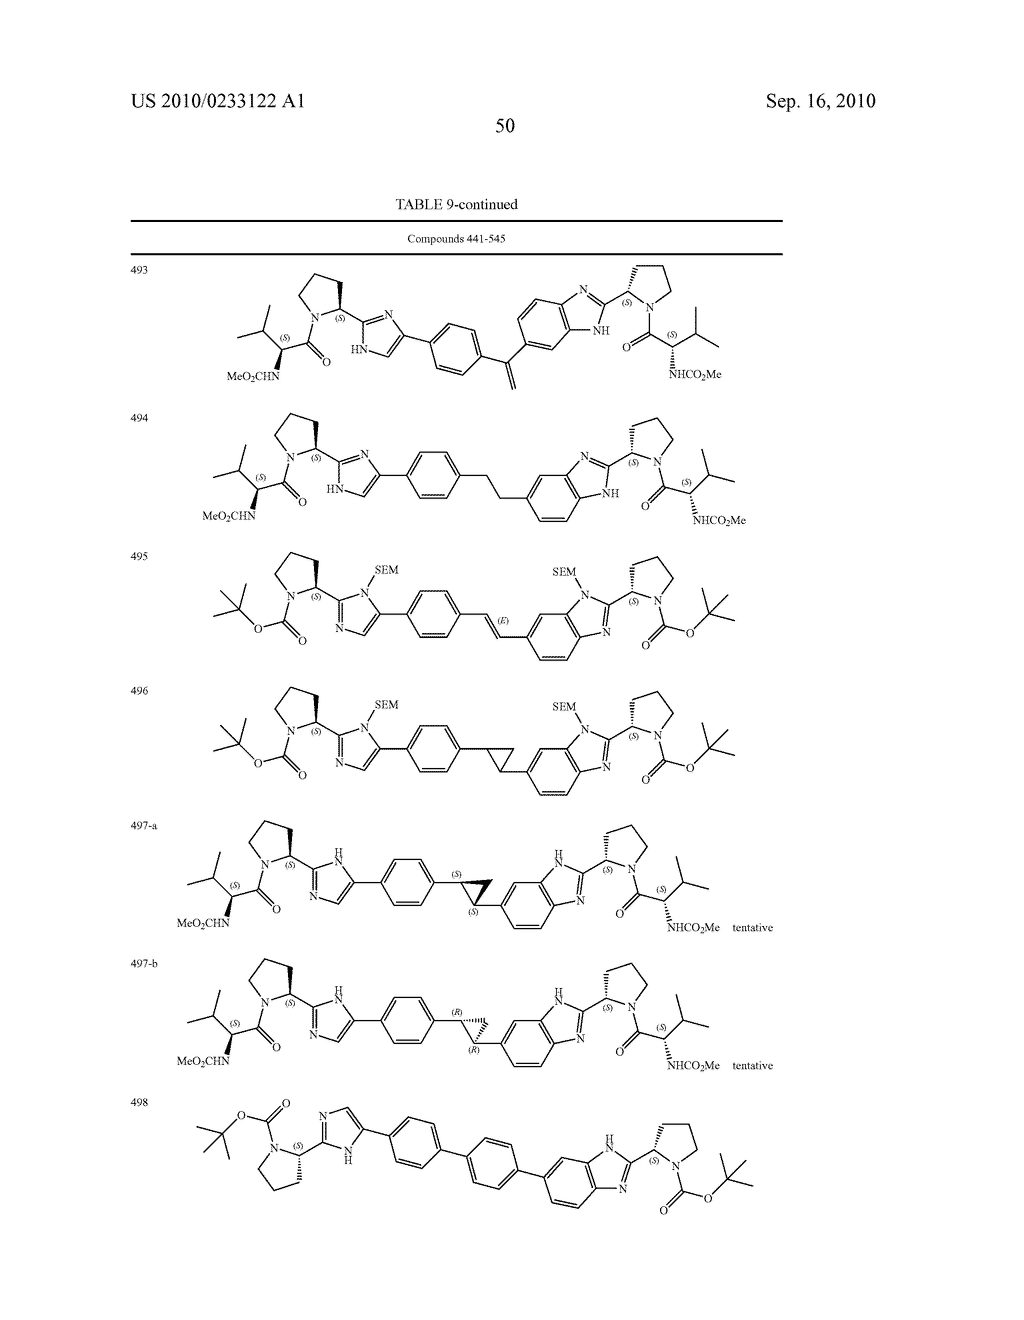 NOVEL BENZIMIDAZOLE DERIVATIVES - diagram, schematic, and image 51